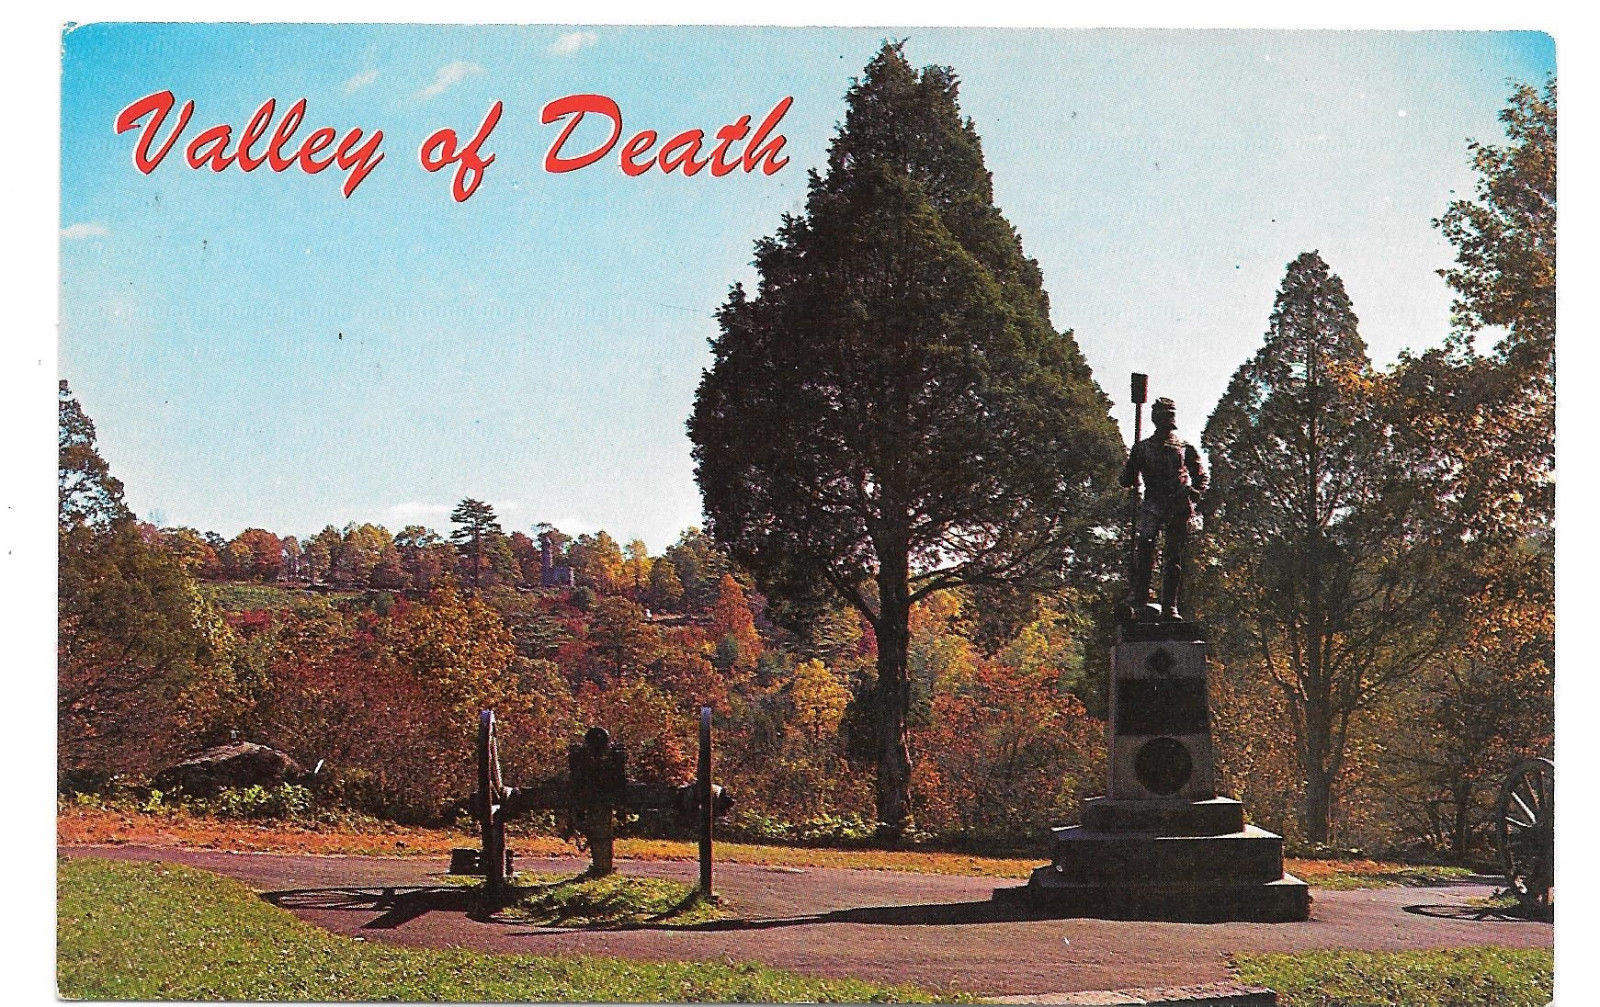 Gettysburg Civil War Valley of Death Battlefield Vtg L.E. Smith Postcard PA